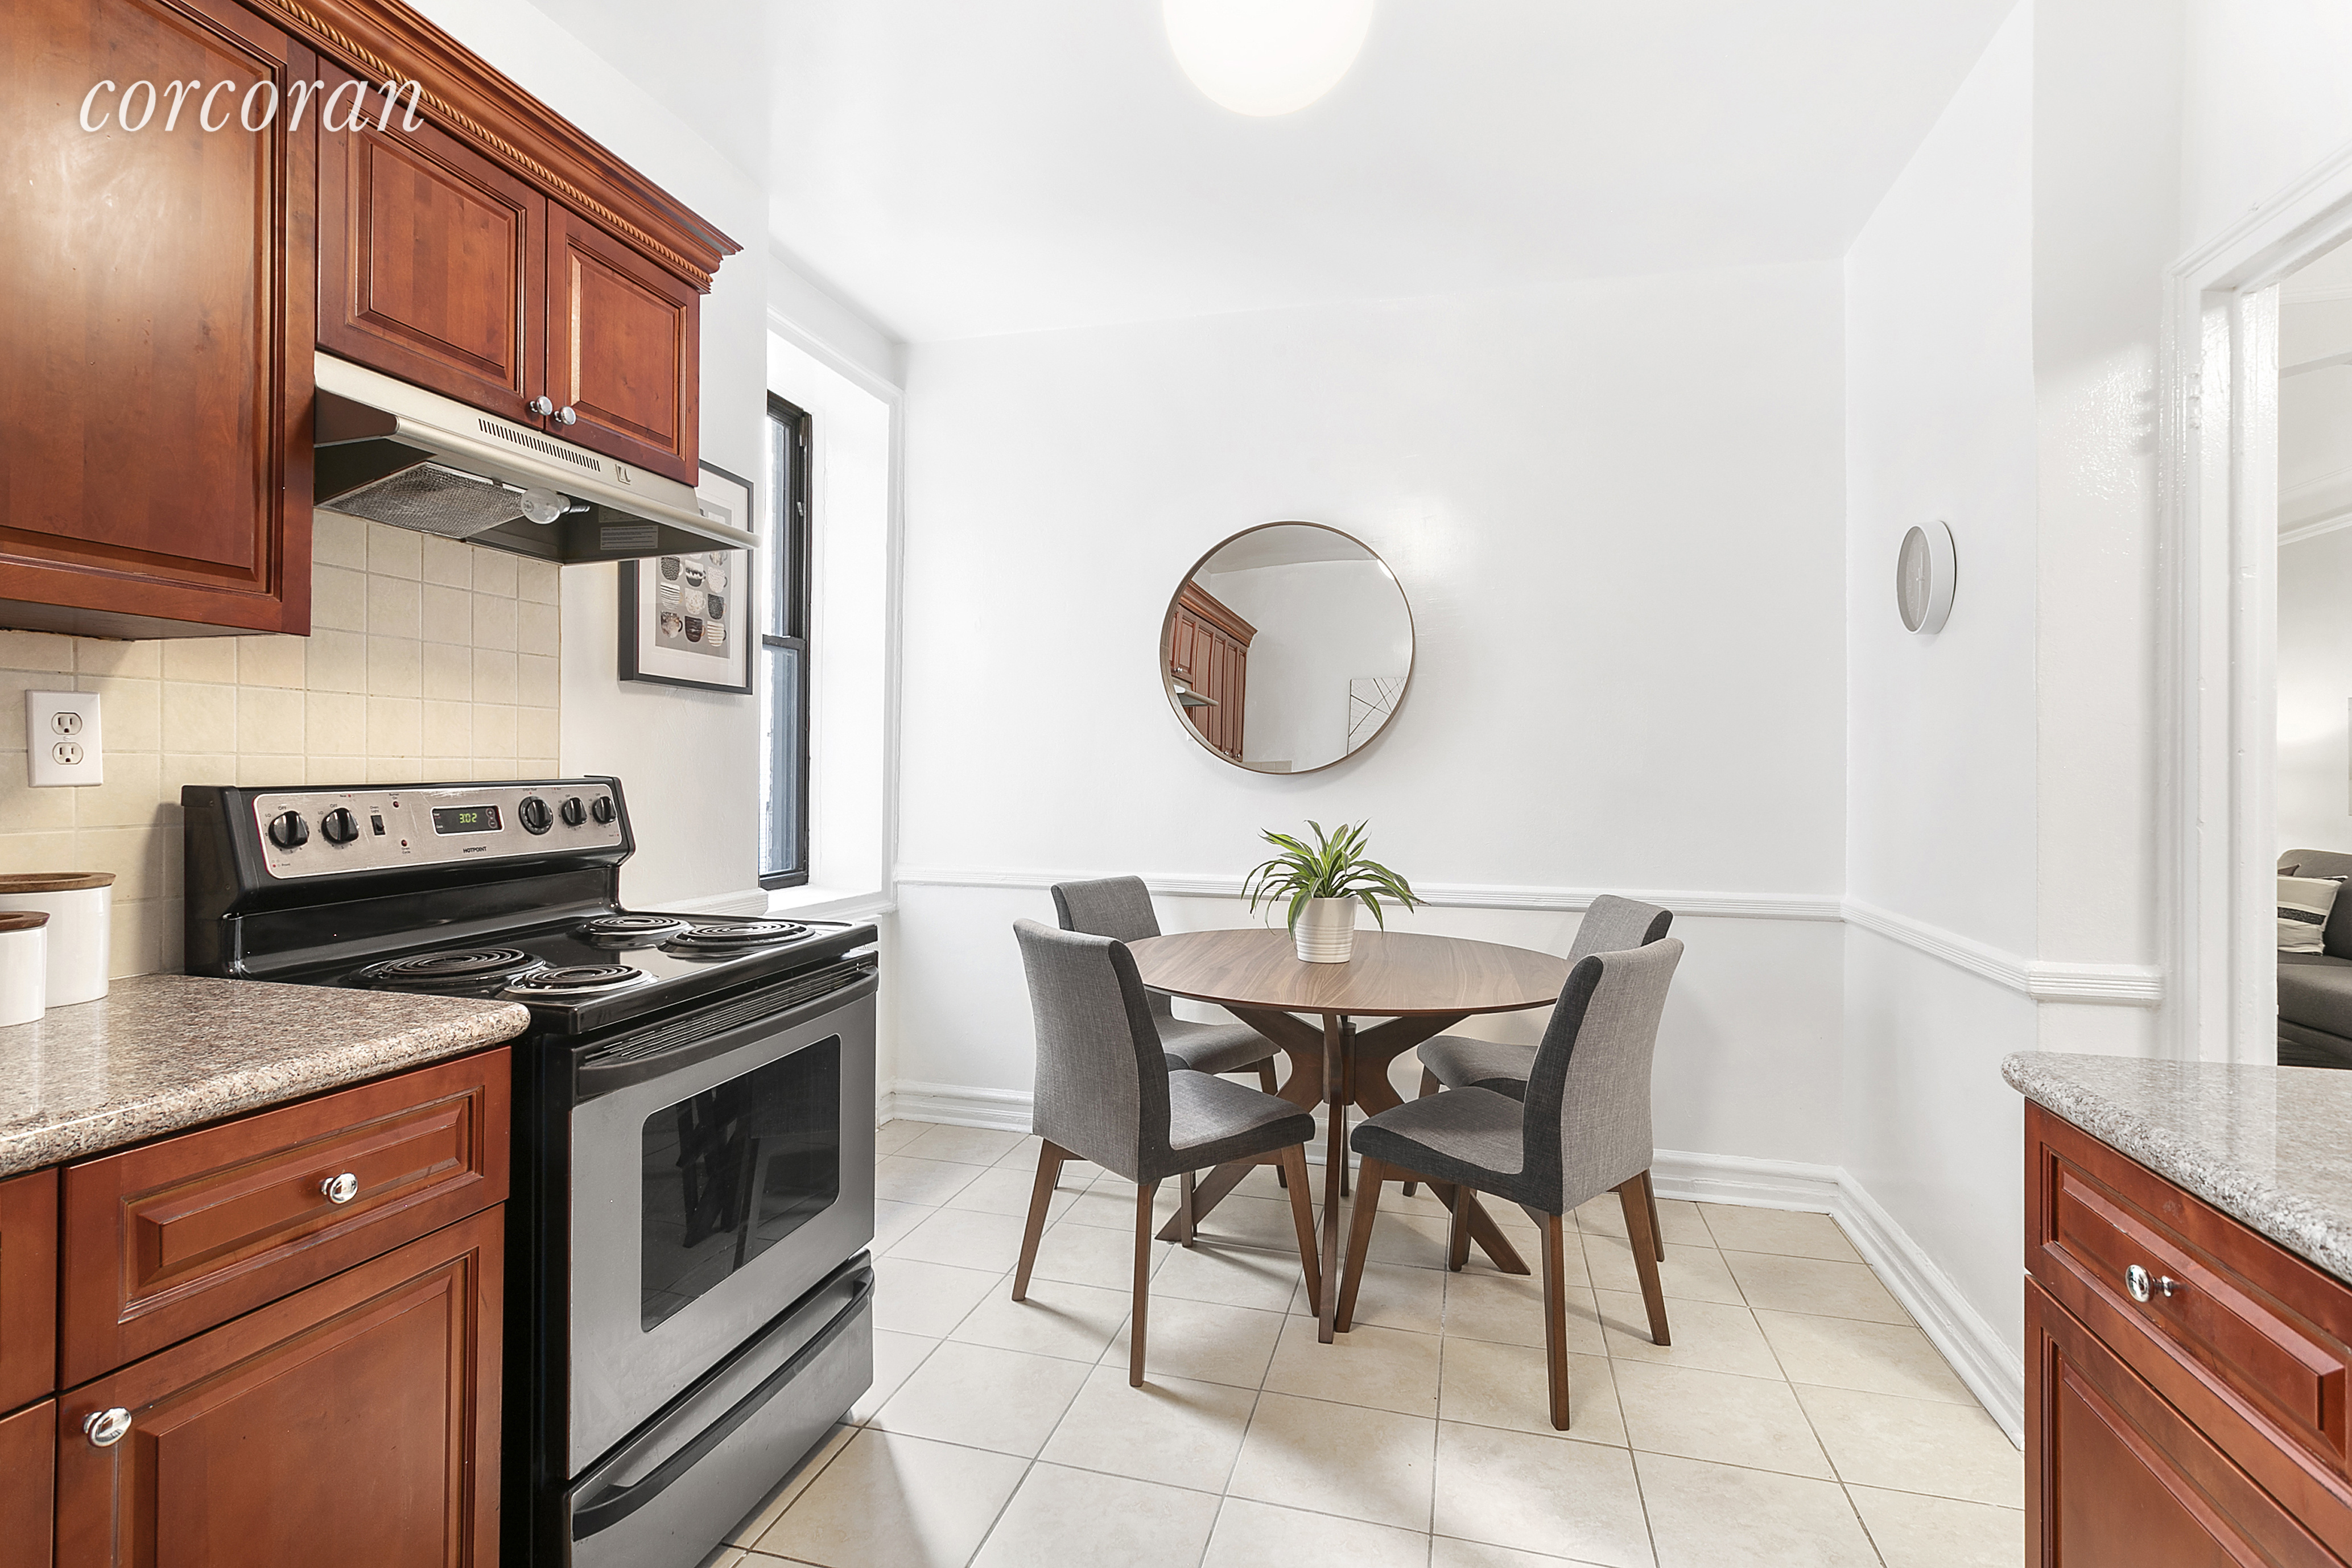 45 Martense St, APT 3A Photo 4 - CORCORAN-5893372